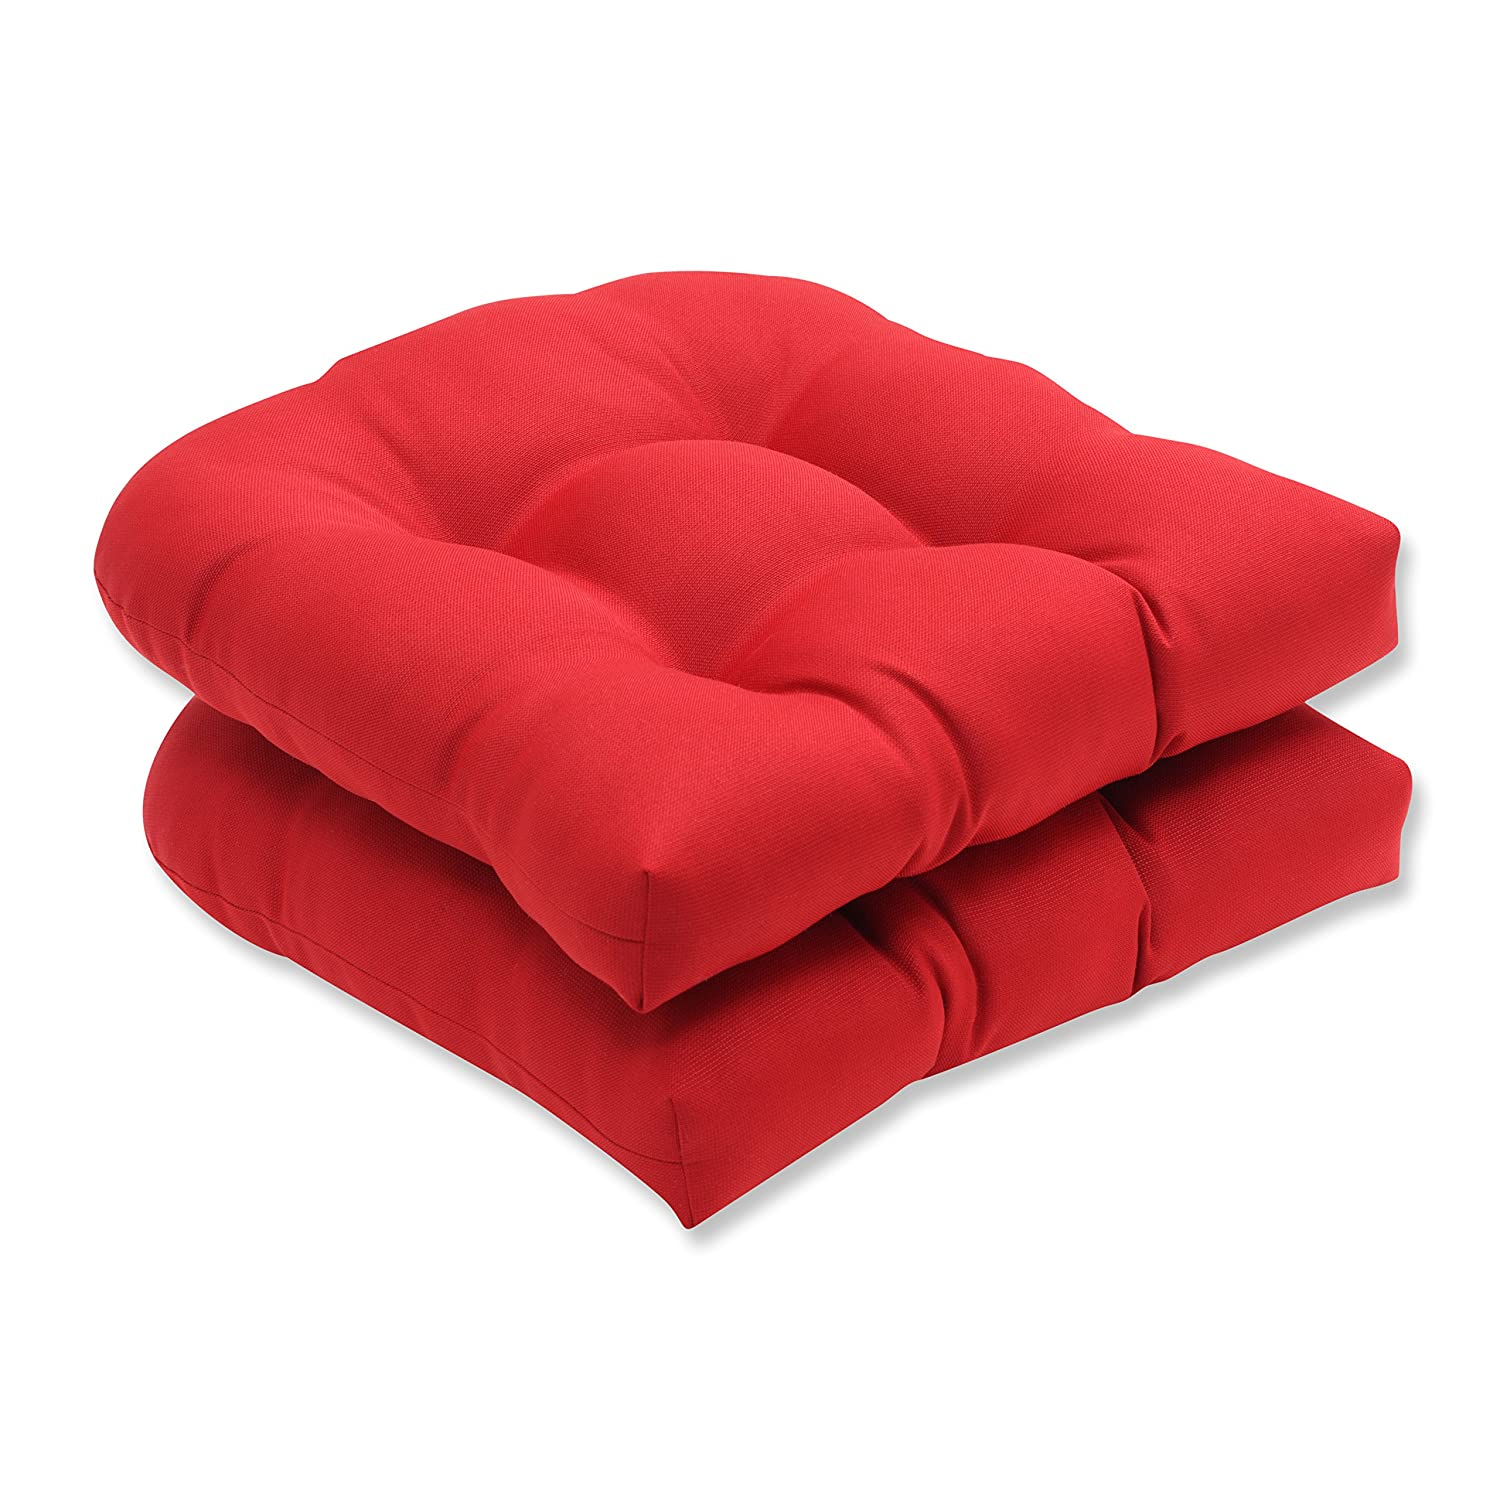 Pillow Perfect Indoor/Outdoor Red Solid Wicker Seat Cushions, 2 Pack Part 55